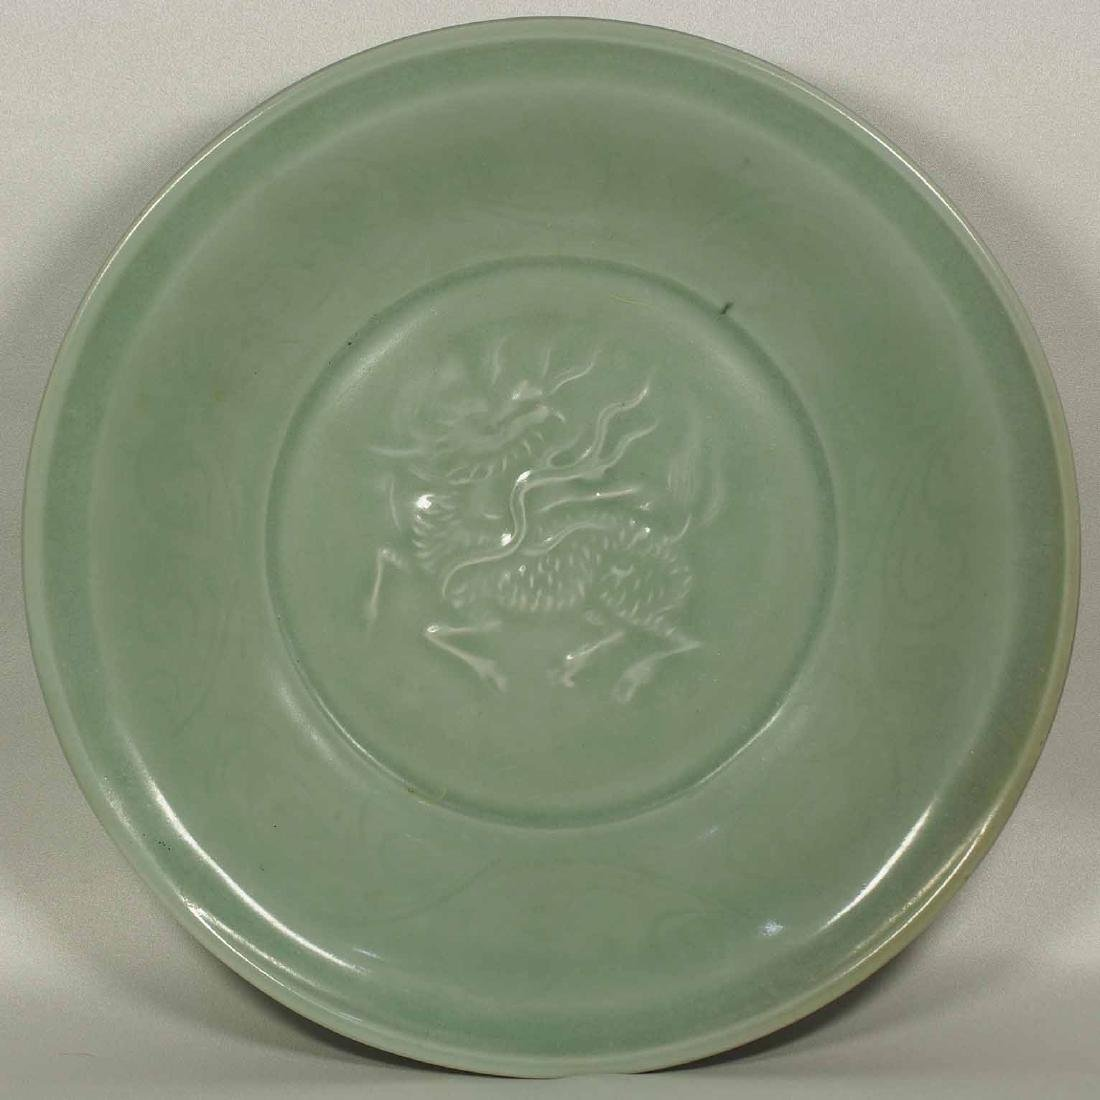 Longquan Plate with Impressed Qilin, mid-Ming Dynasty